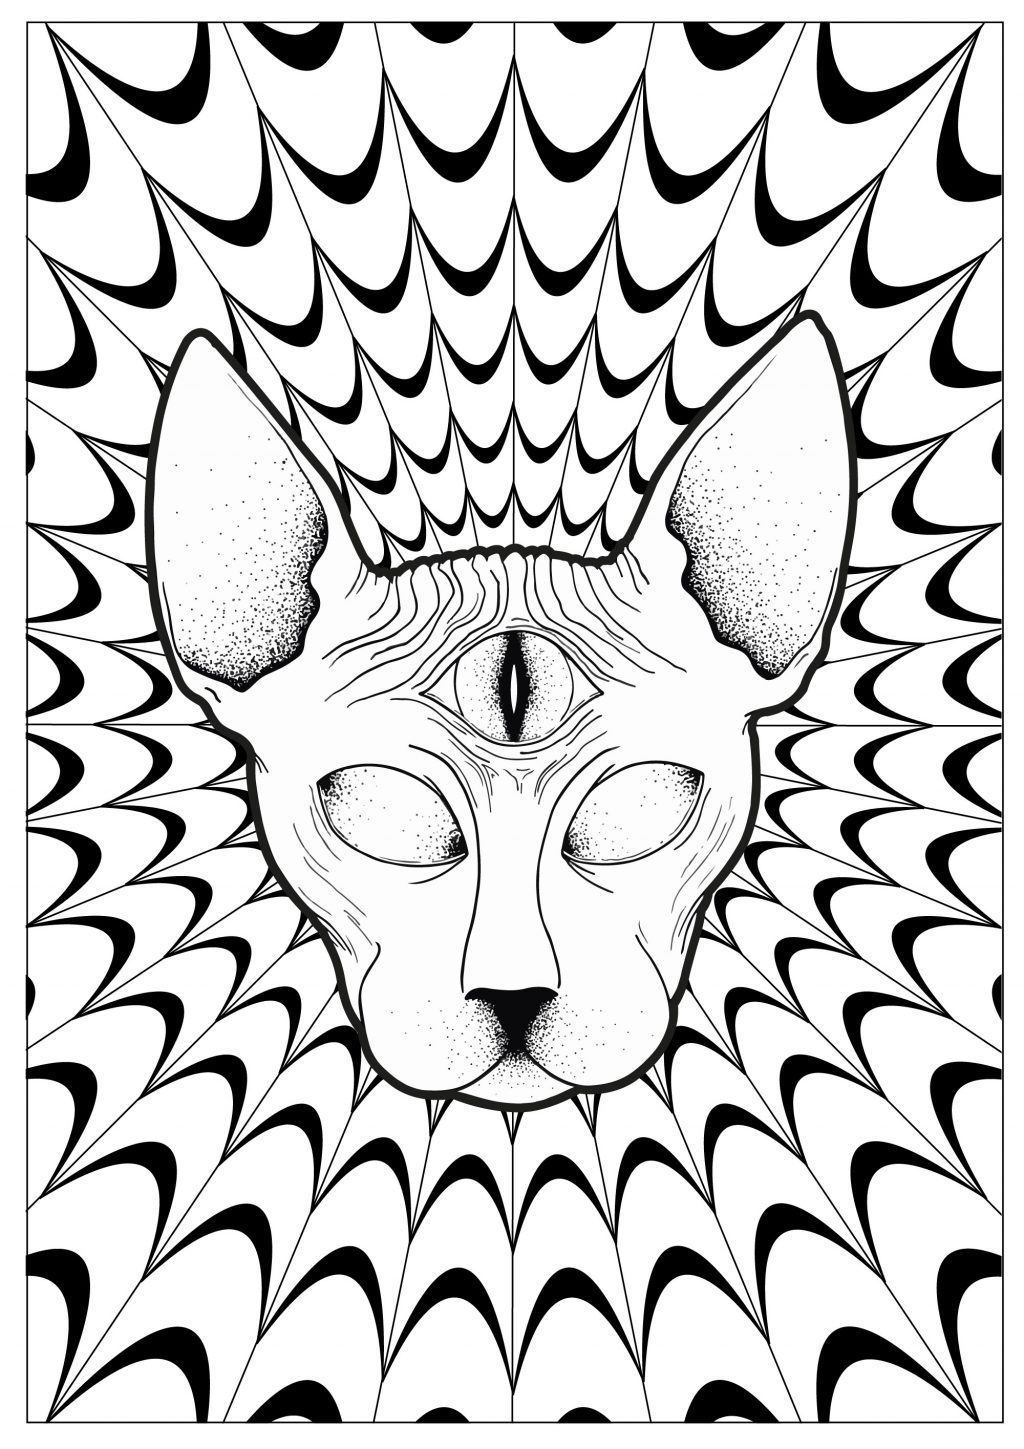 Trippy Drawings   Free download on ClipArtMag